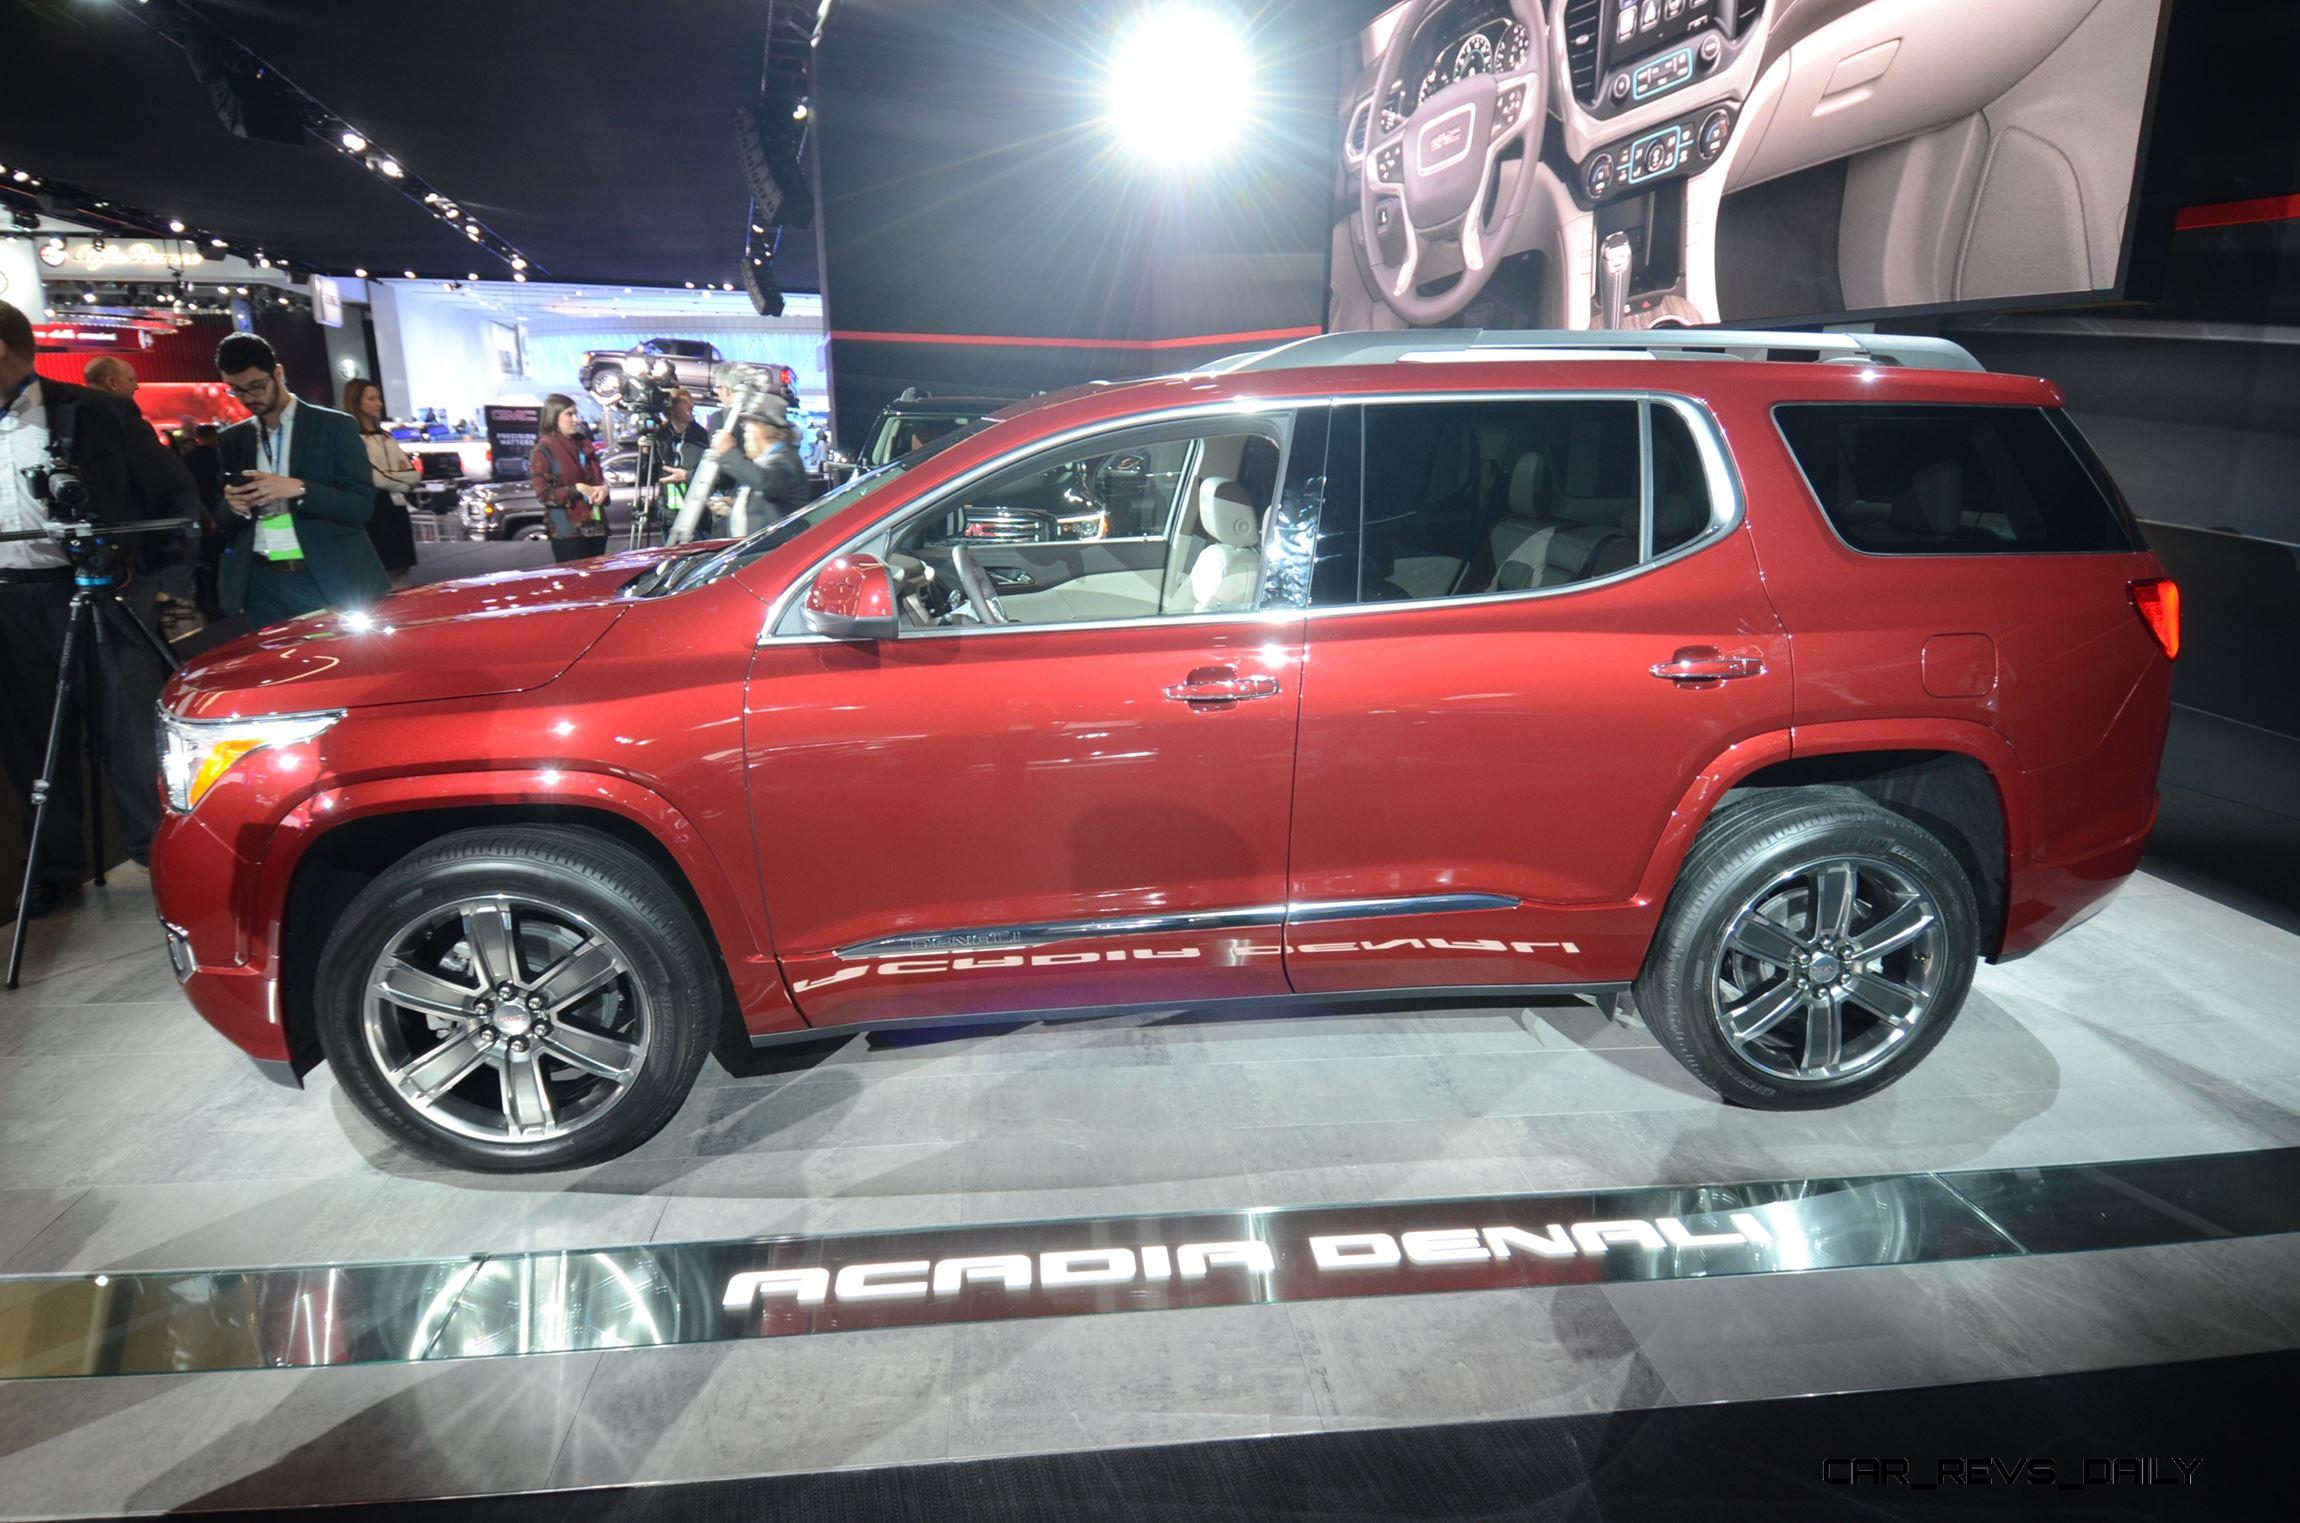 2017 gmc acadia denali road test review by tim esterdahl car revs. Black Bedroom Furniture Sets. Home Design Ideas